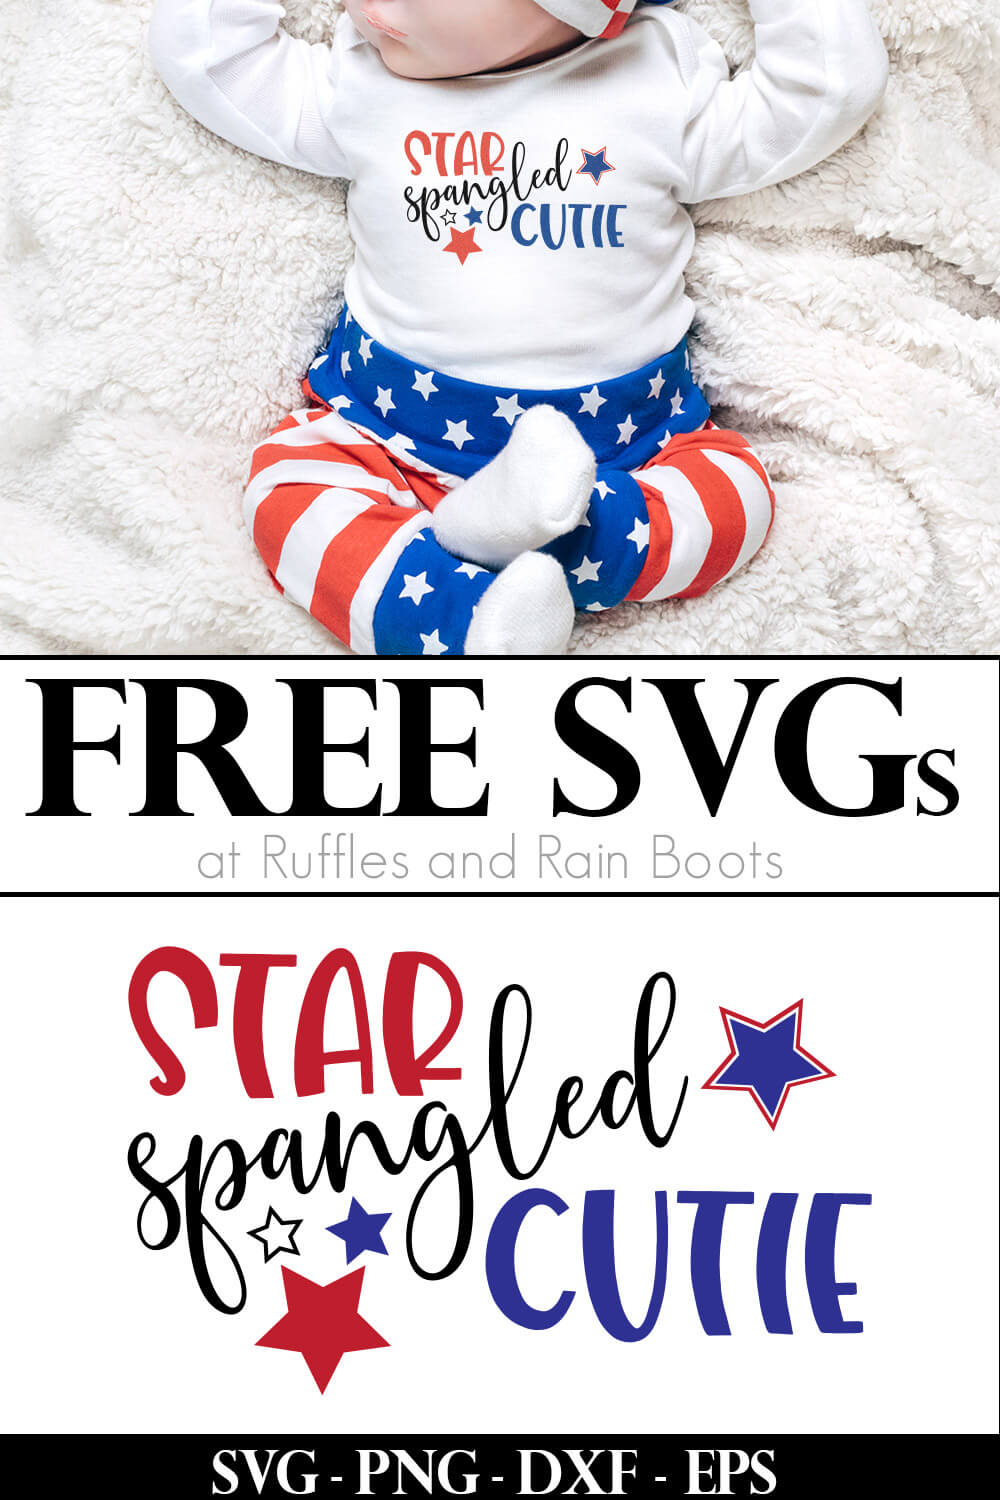 baby in white onesie on blanket with star spangled cutie patriotic svg for cricut on the bottom image with text which reads free svgs